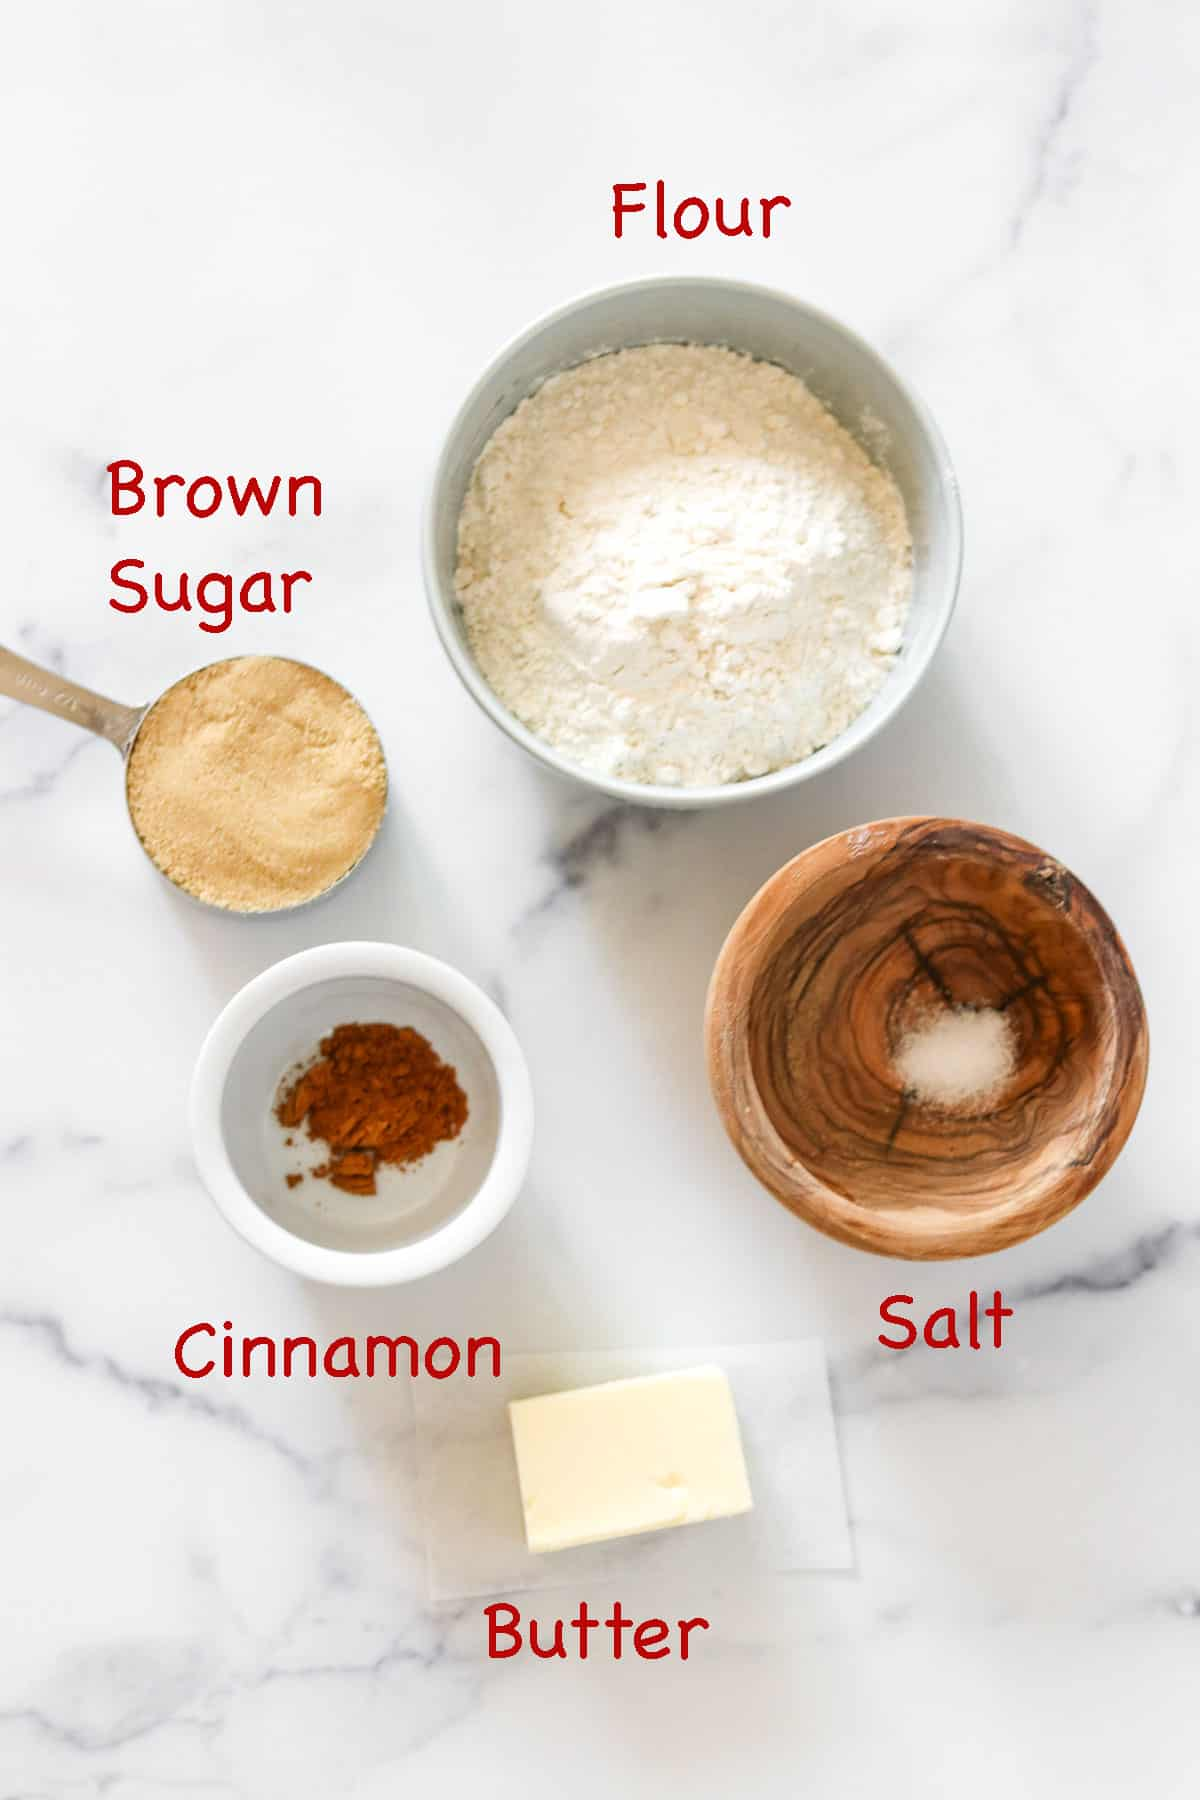 Labeled ingredients for crumb topping.